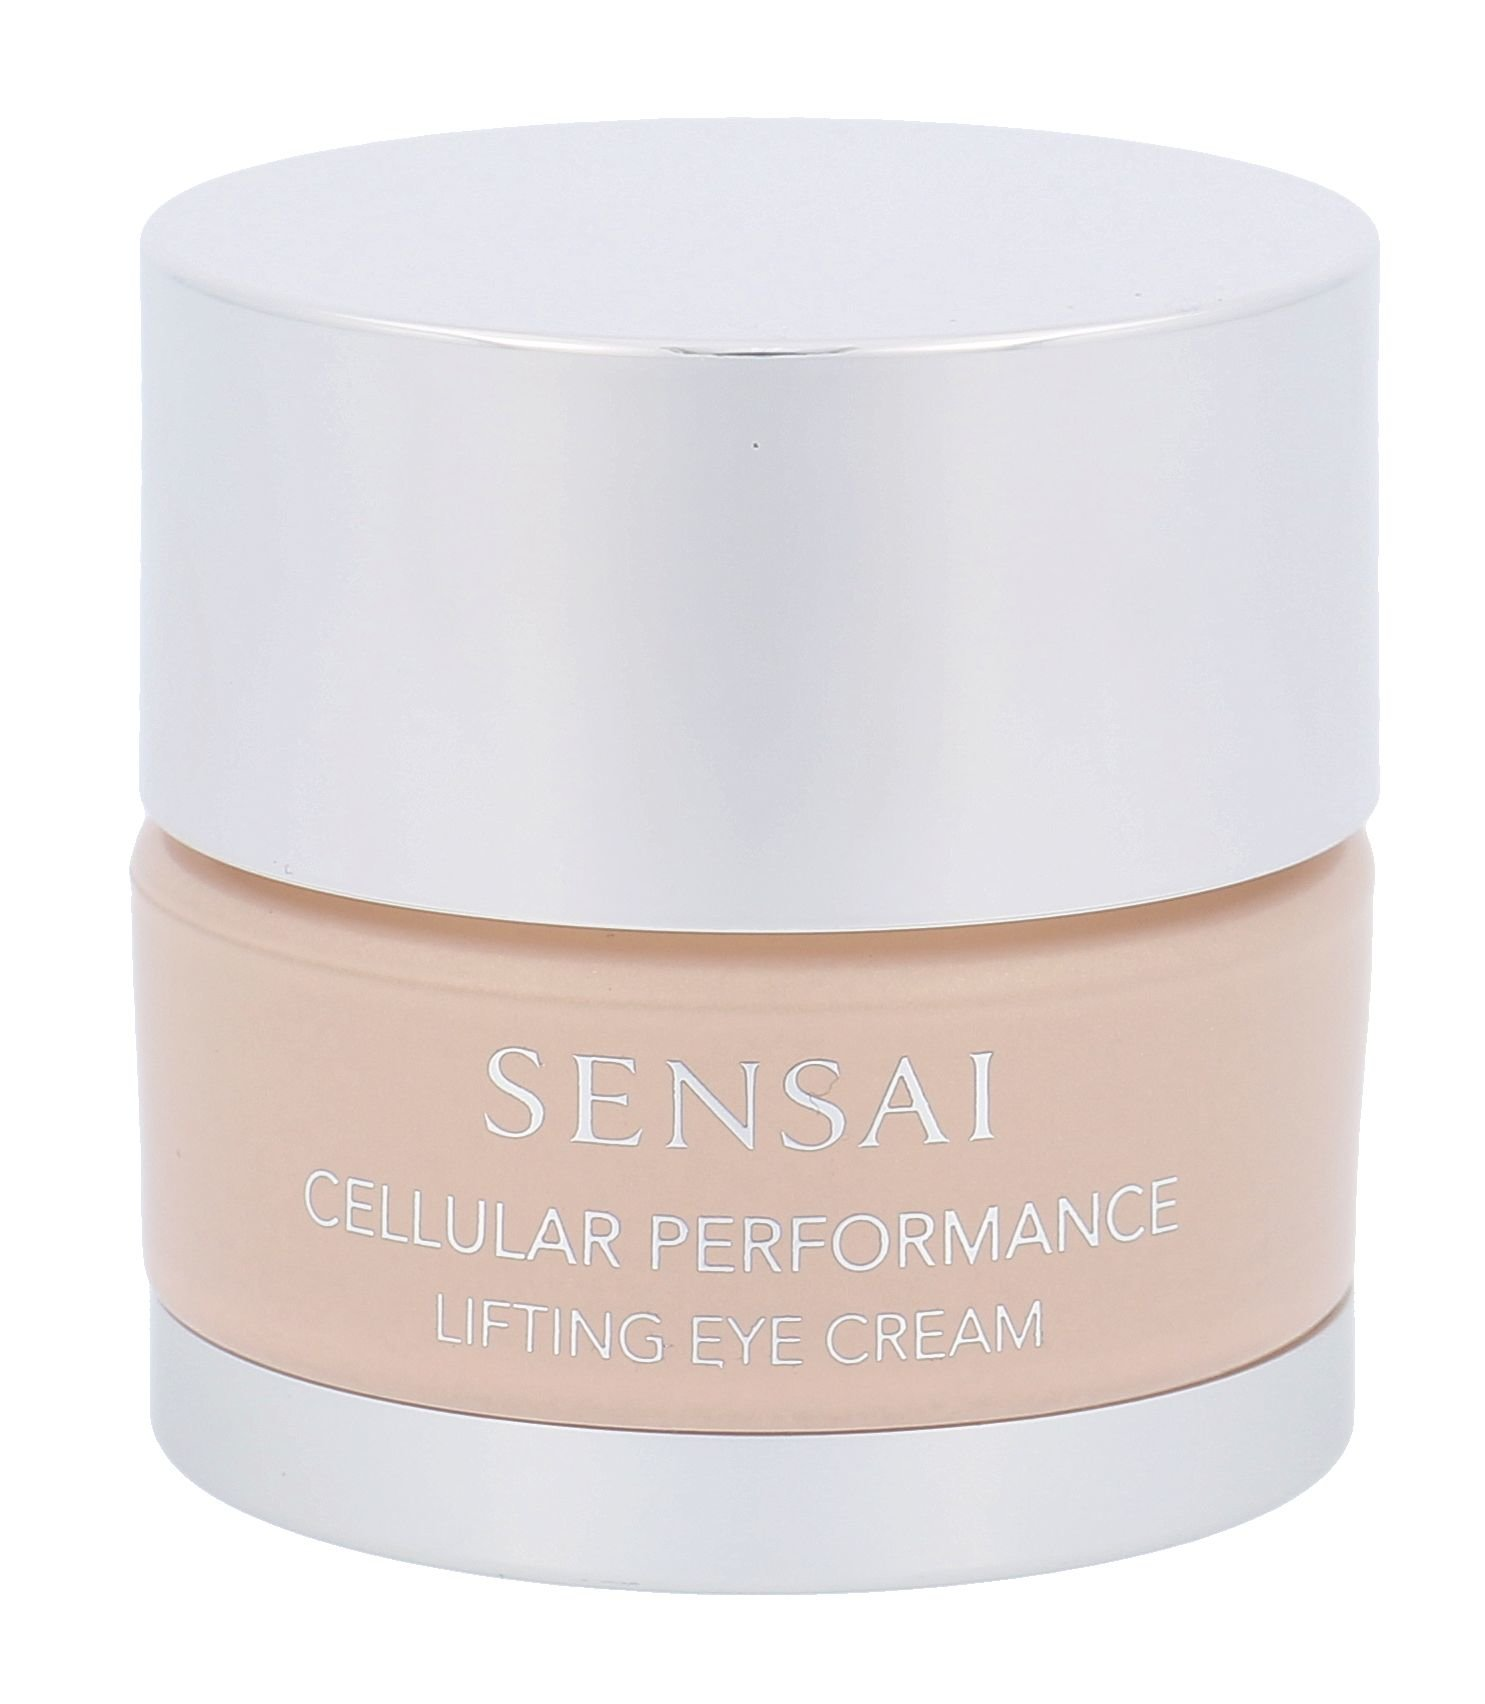 Kanebo Sensai Cellular Perfomance Lifting Eye Cream Cosmetic 15ml